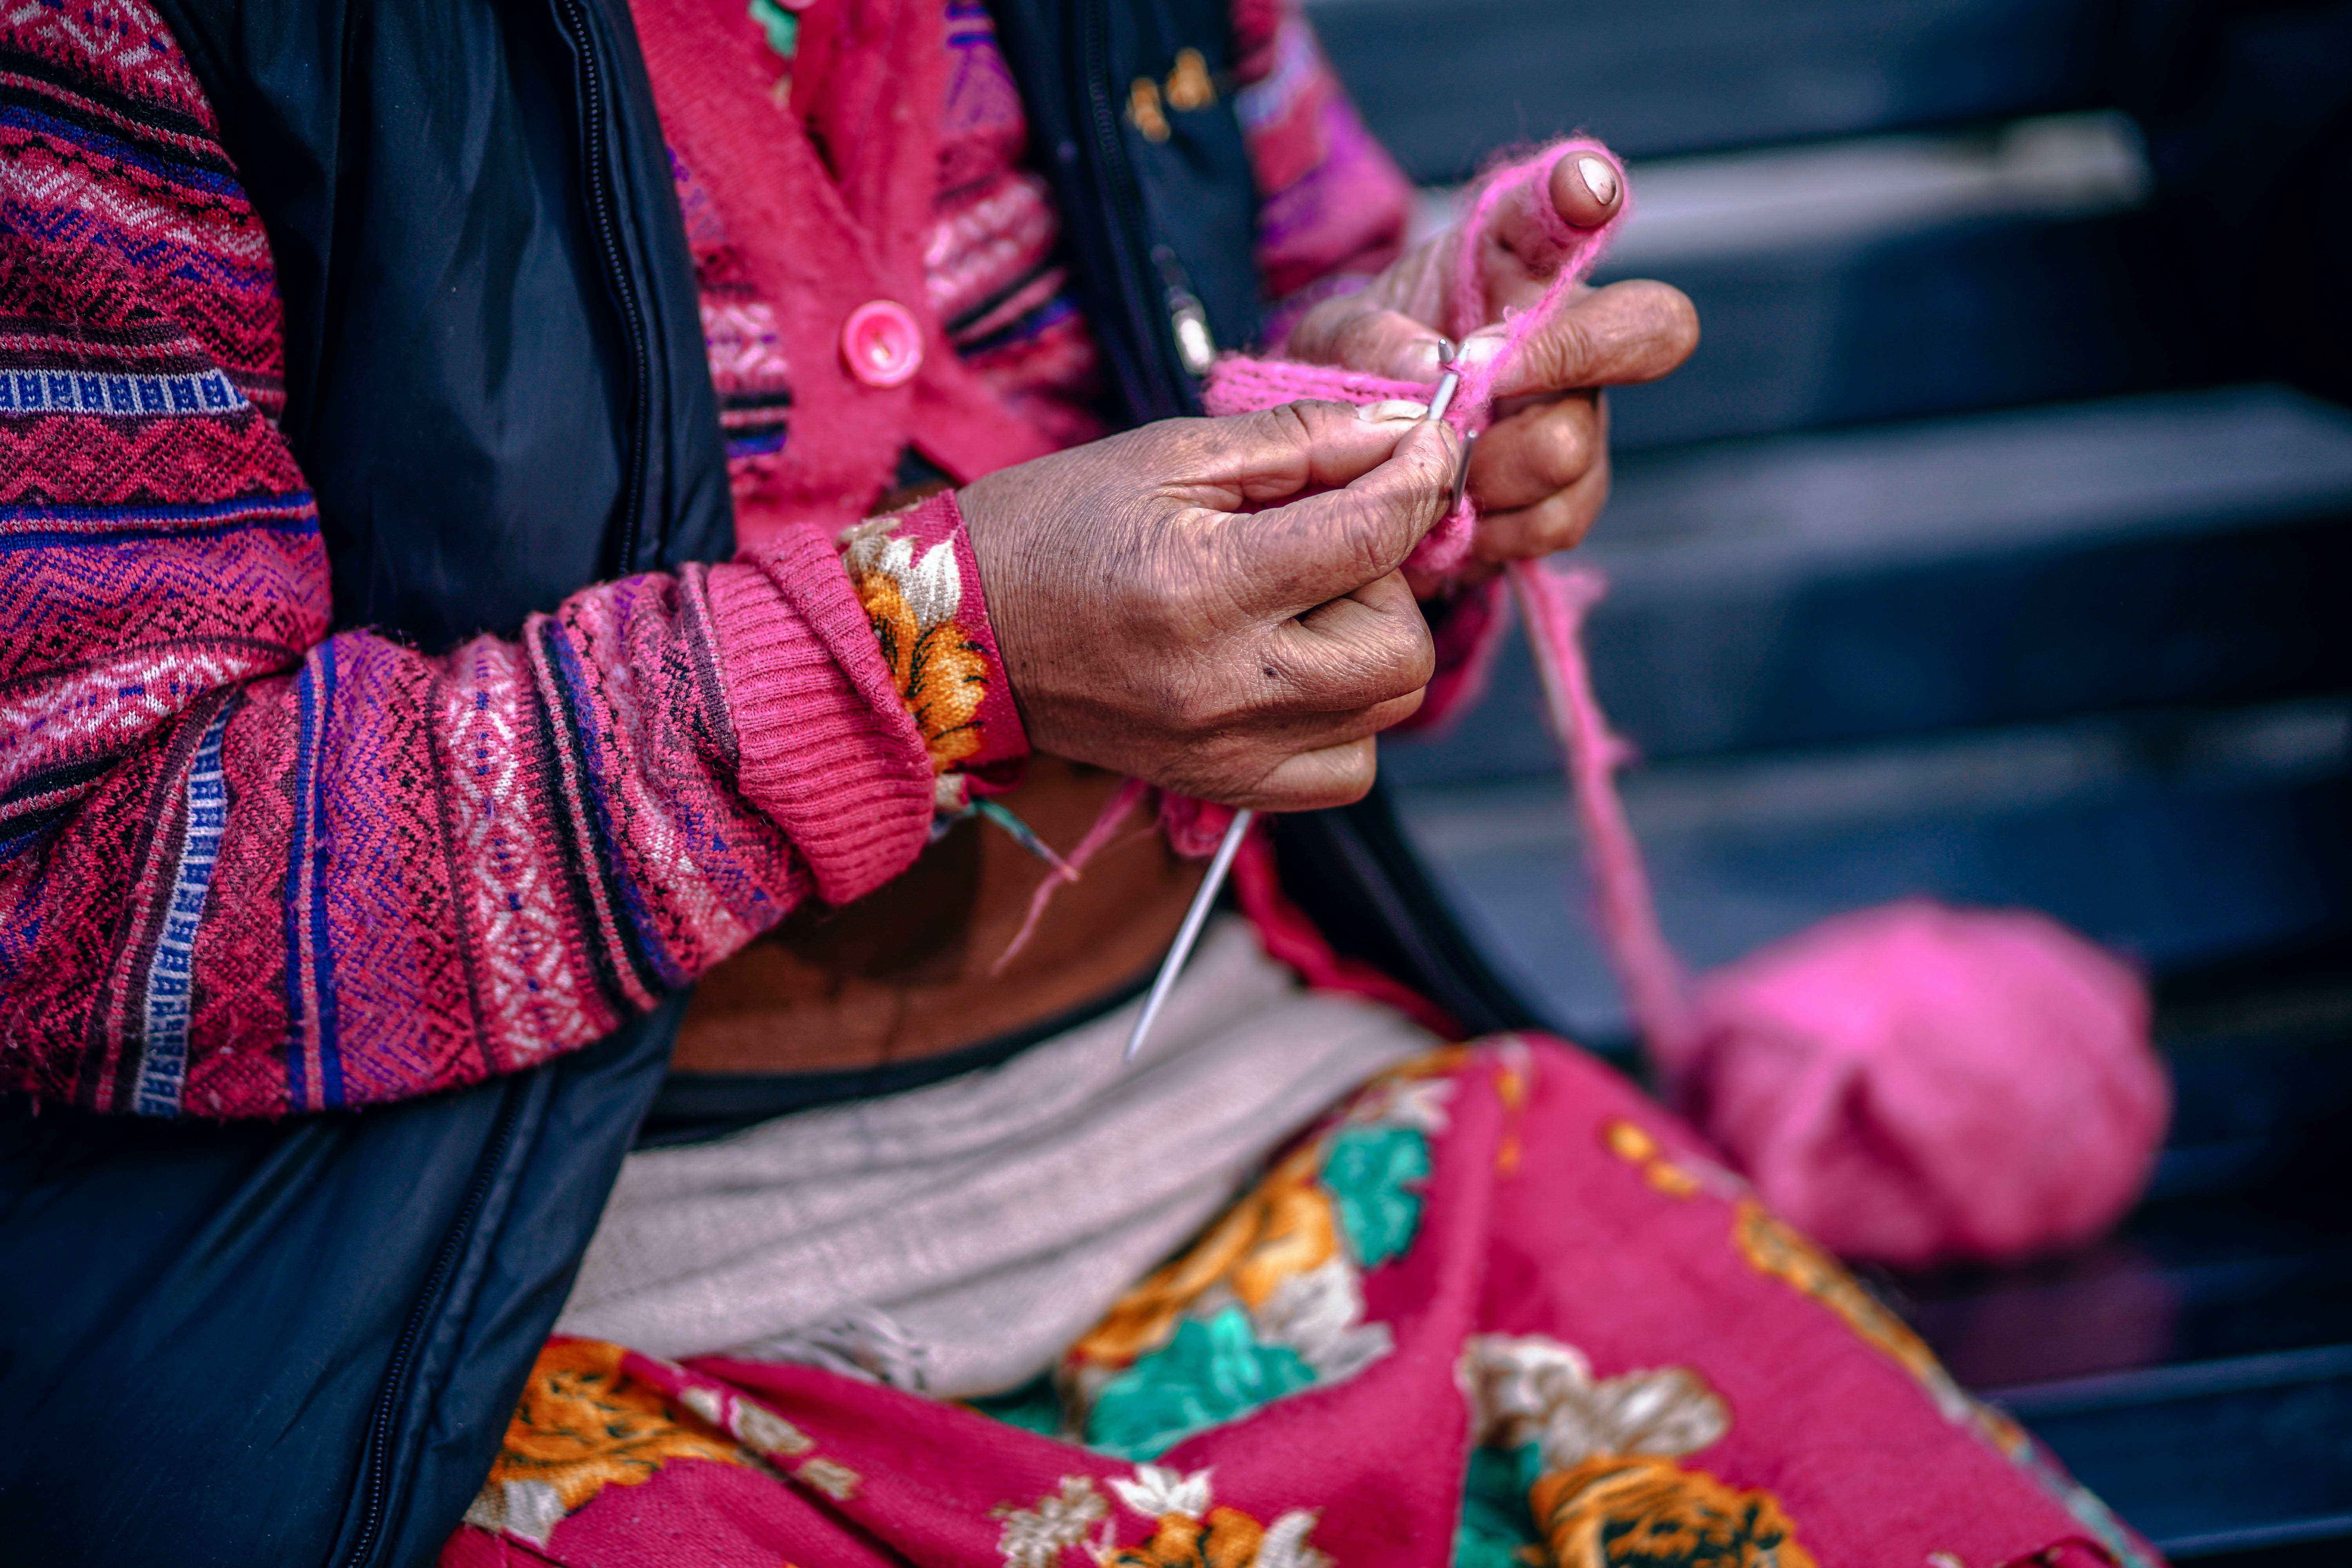 A person wearing a lot of pink clothing knitting with pink yarn in Manali